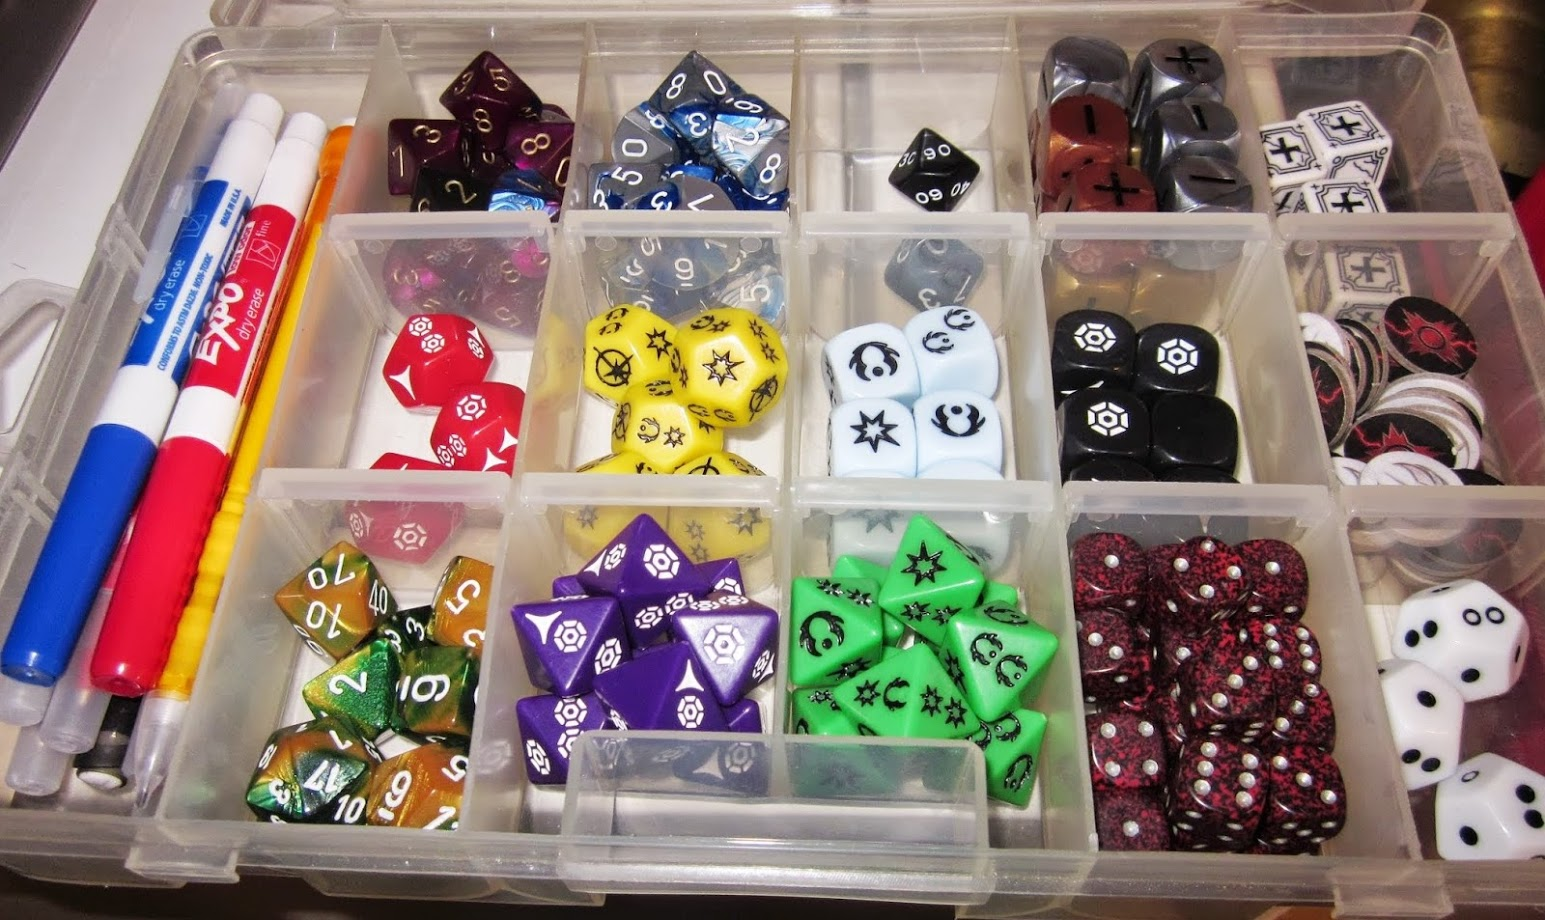 A plastic toolbox full of dice, tokens, and markers.